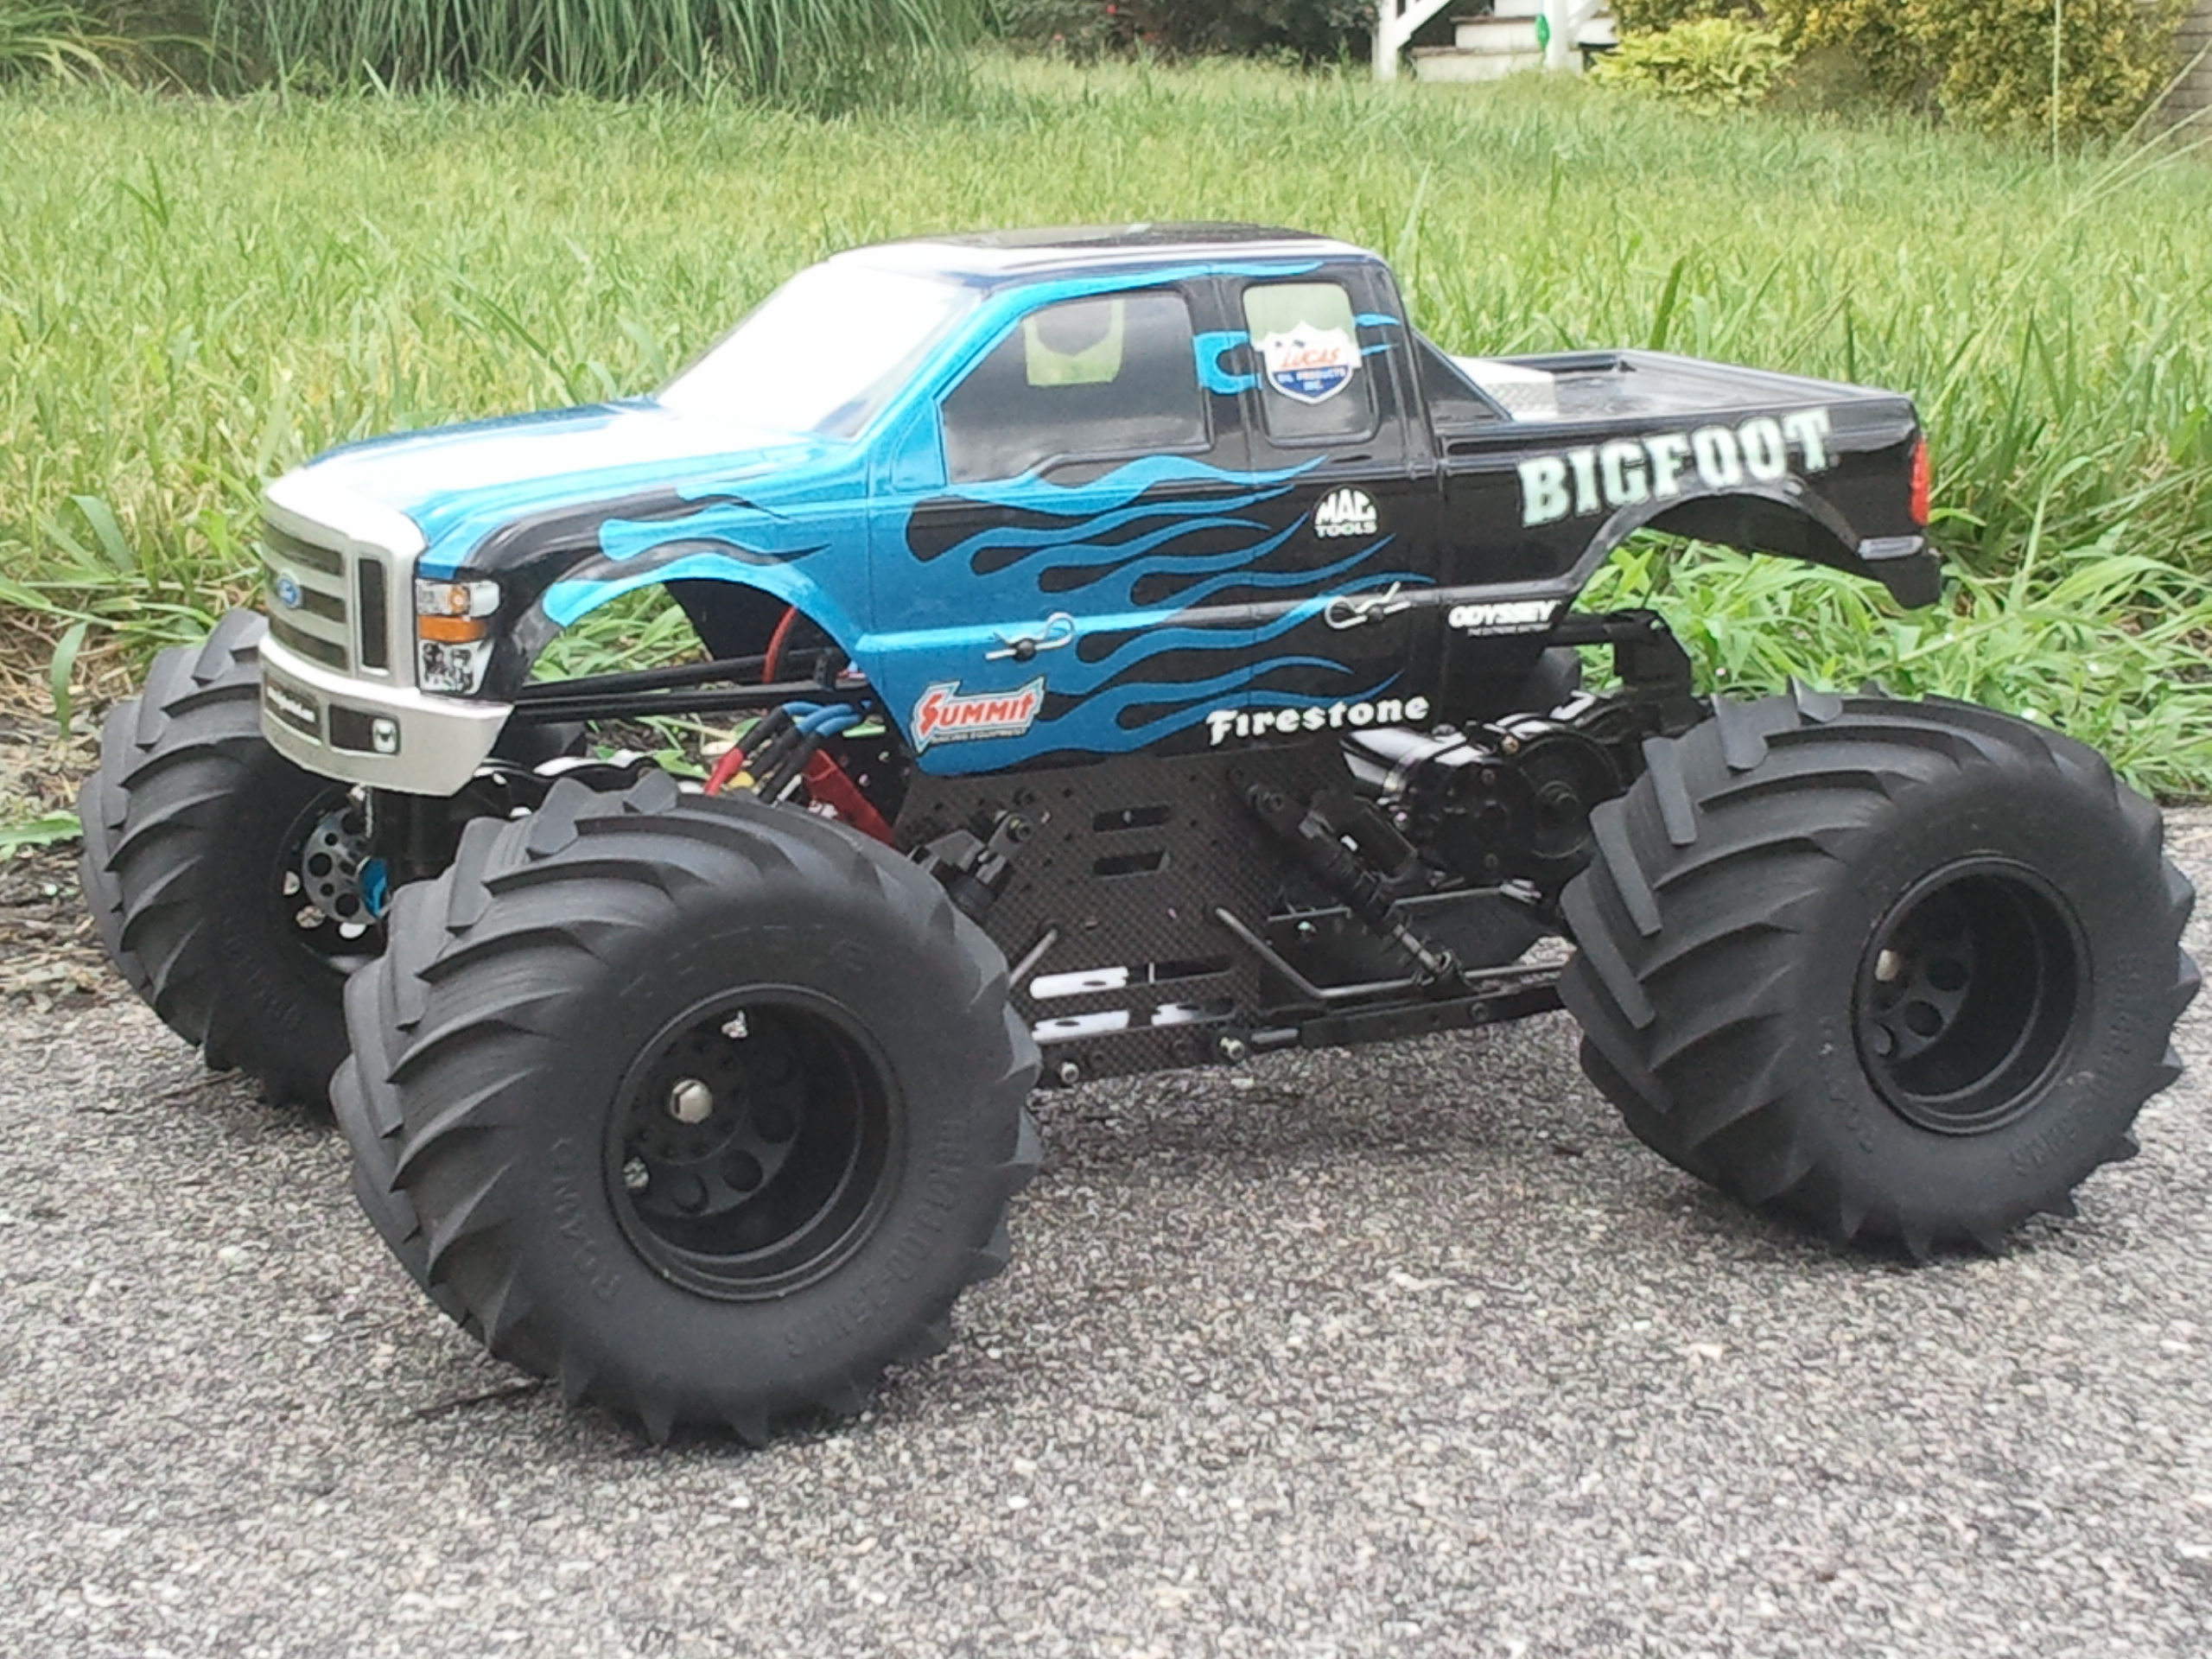 4x4 brushless rc trucks with Truck Of The Week 8122012 Tamiya Clod Buster on Showthread together with 9034391 Carbon Fiber Rustler Body further TraxxasSlash4x4FoxEdition24GHz110RTRBrushlessElectricRCTruck moreover 132056658810 additionally Traxxas X Maxx Topic.